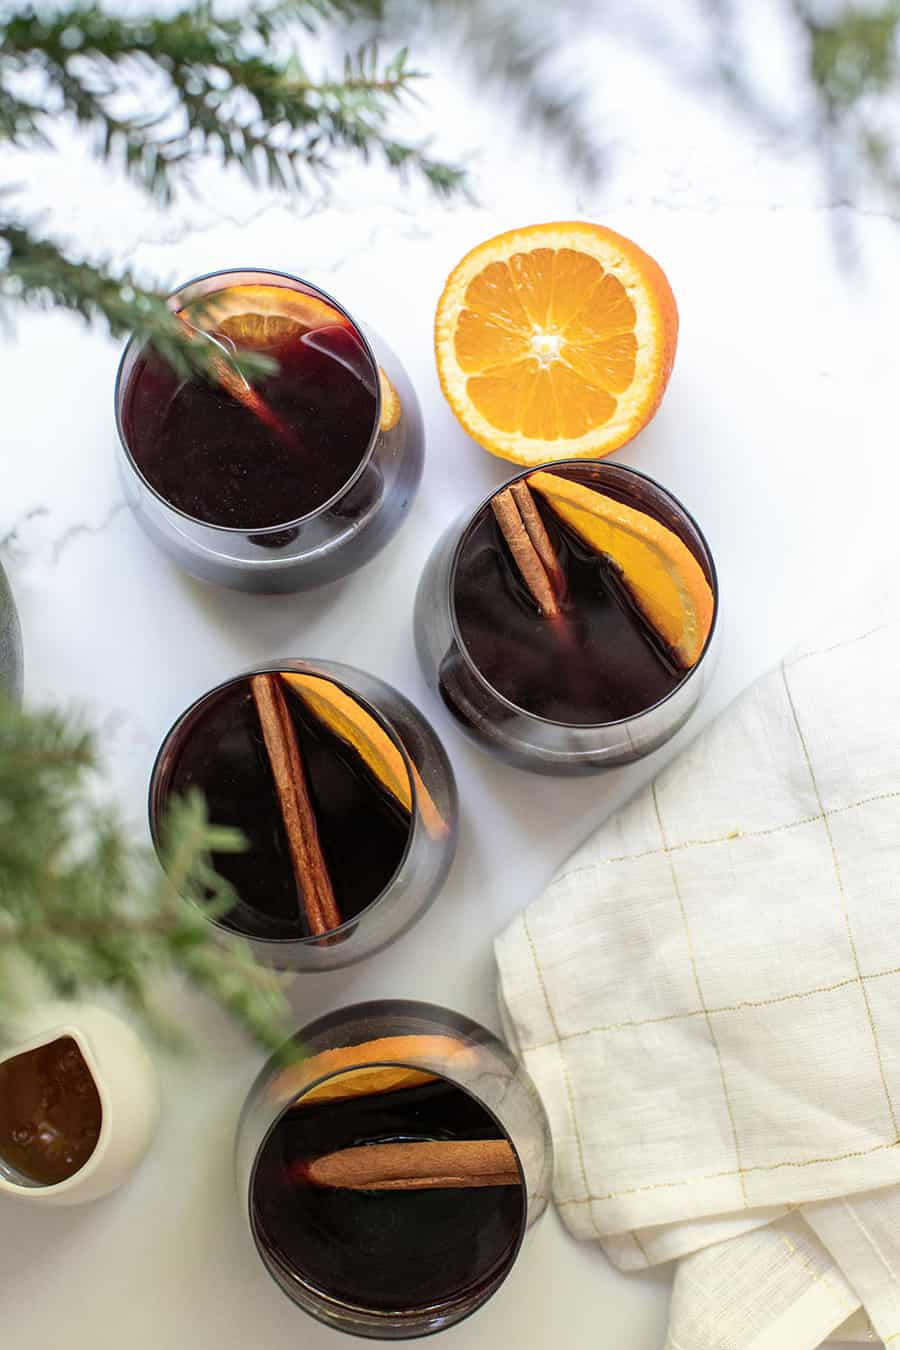 mulled wine recipe in glasses with orange class and cinnamon sticks